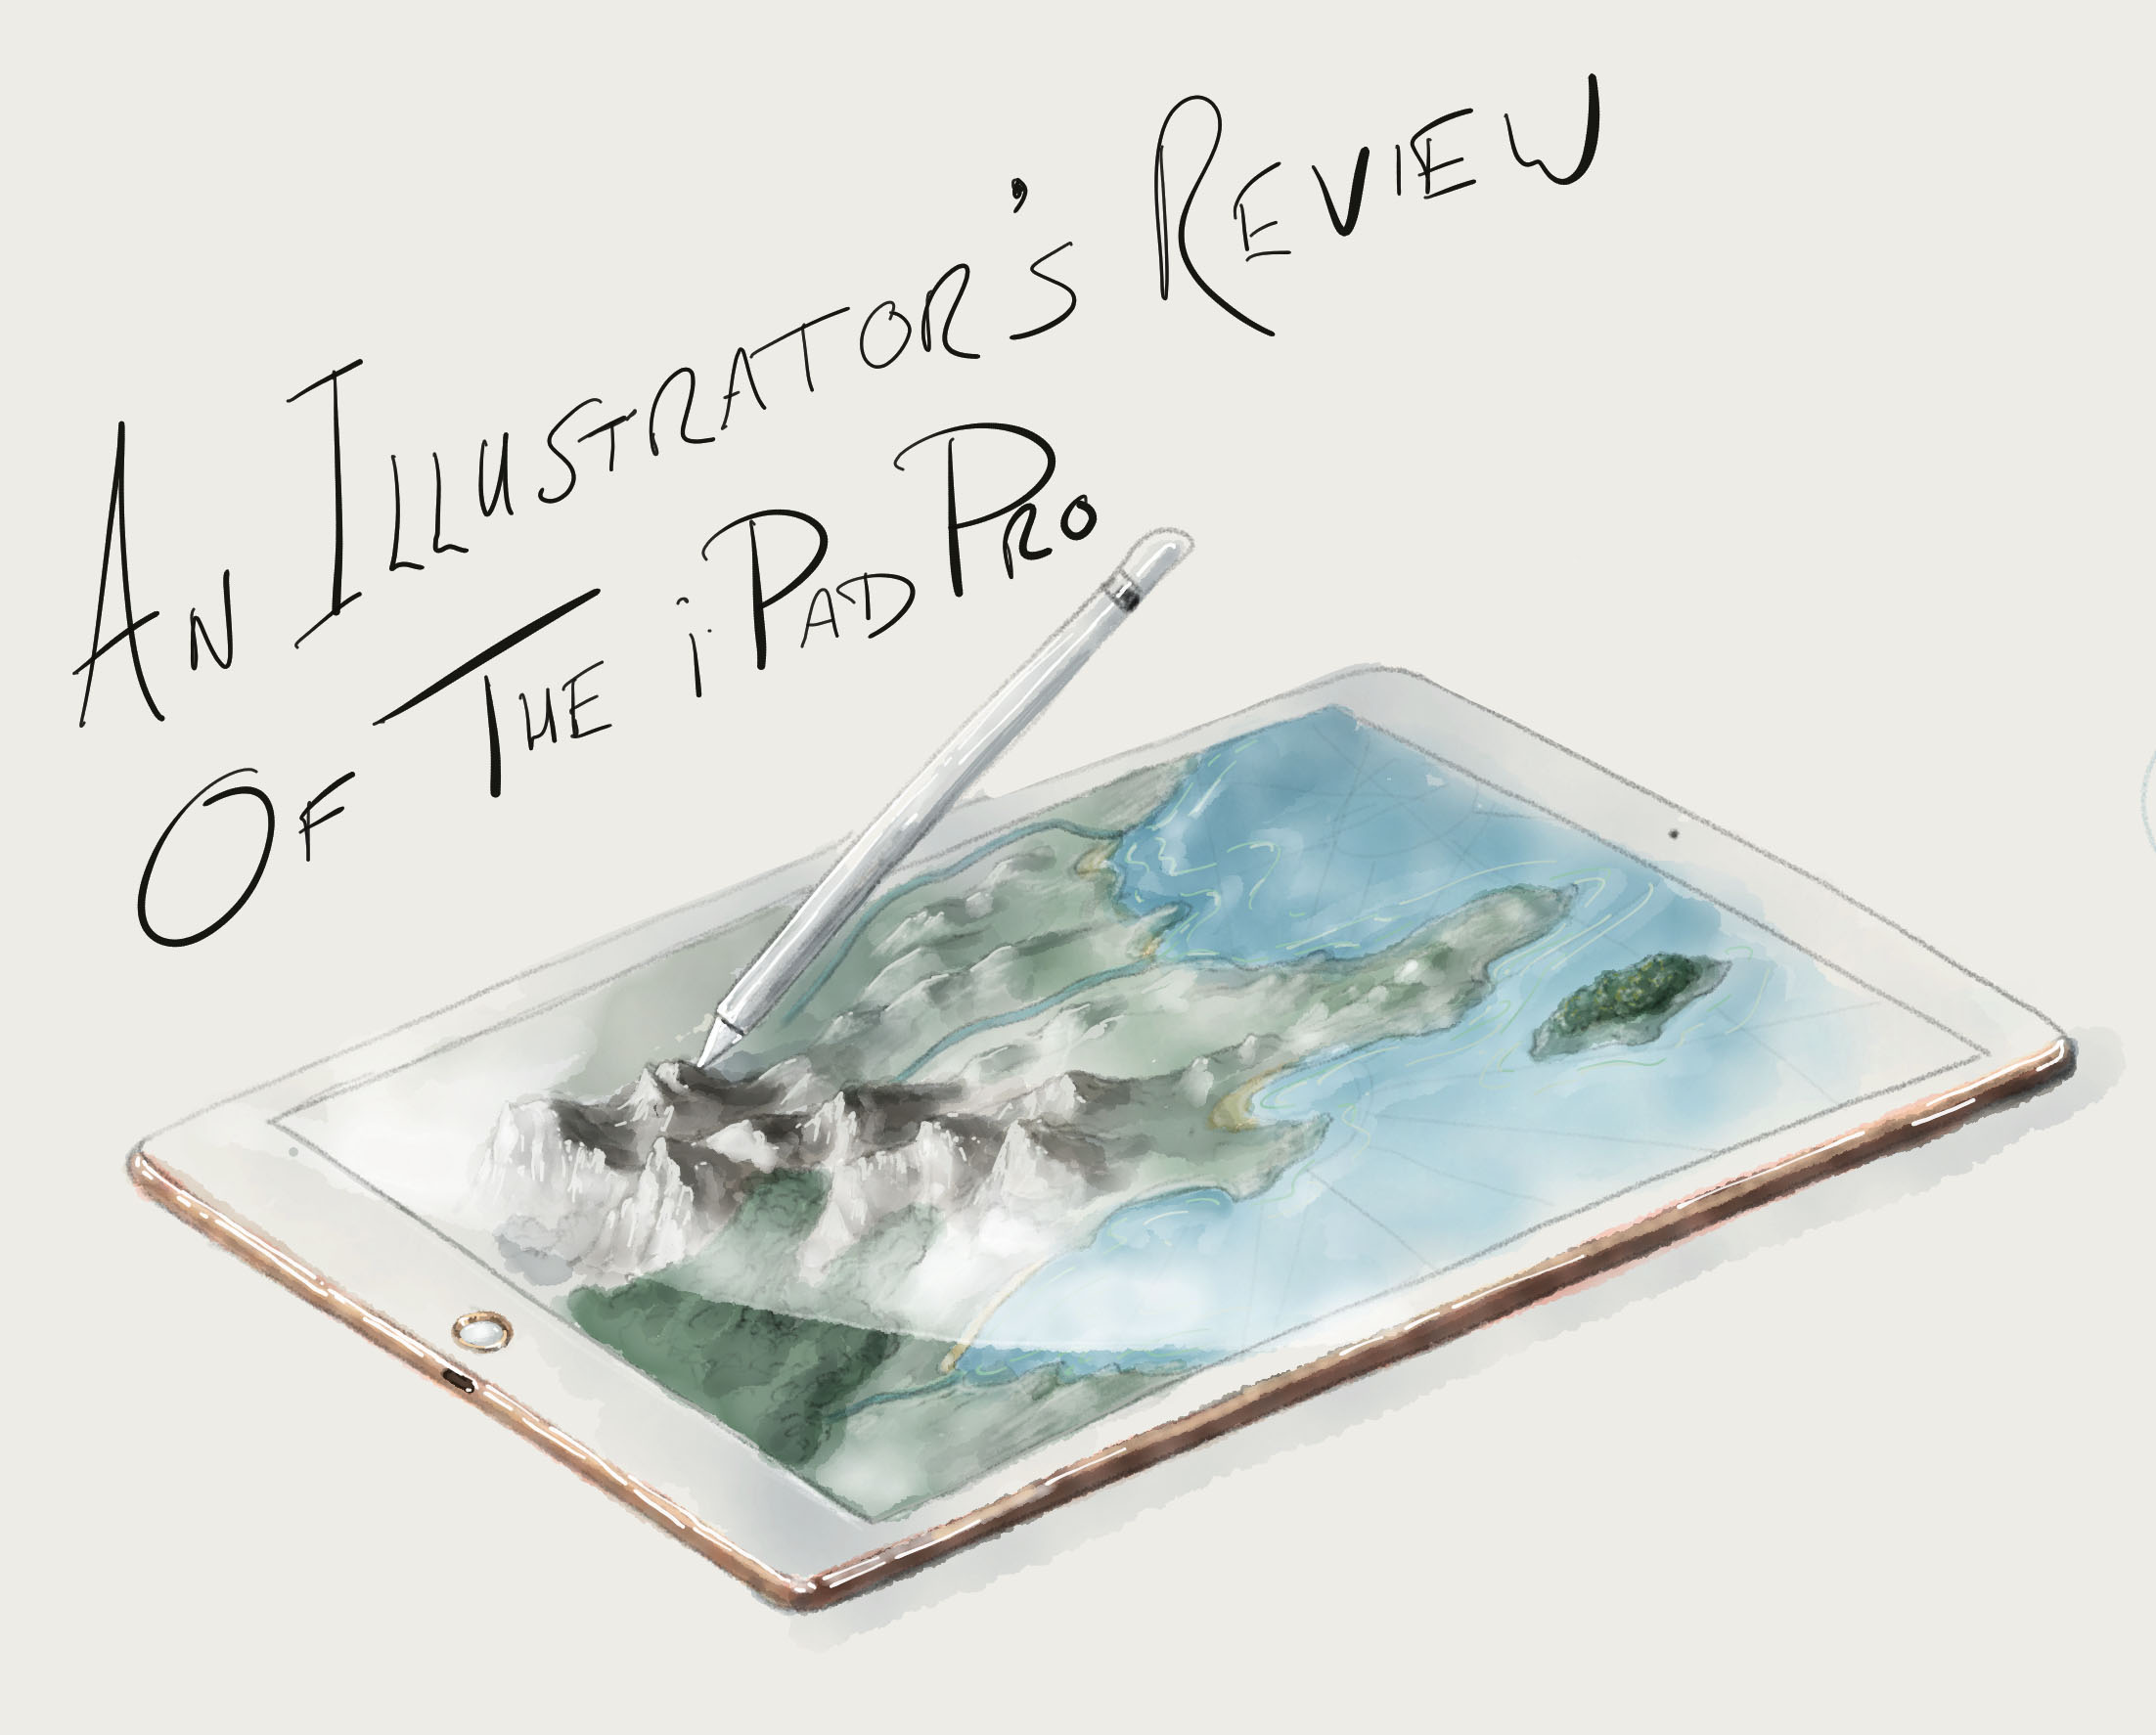 An illustrators review of the ipad pro and apple pencil